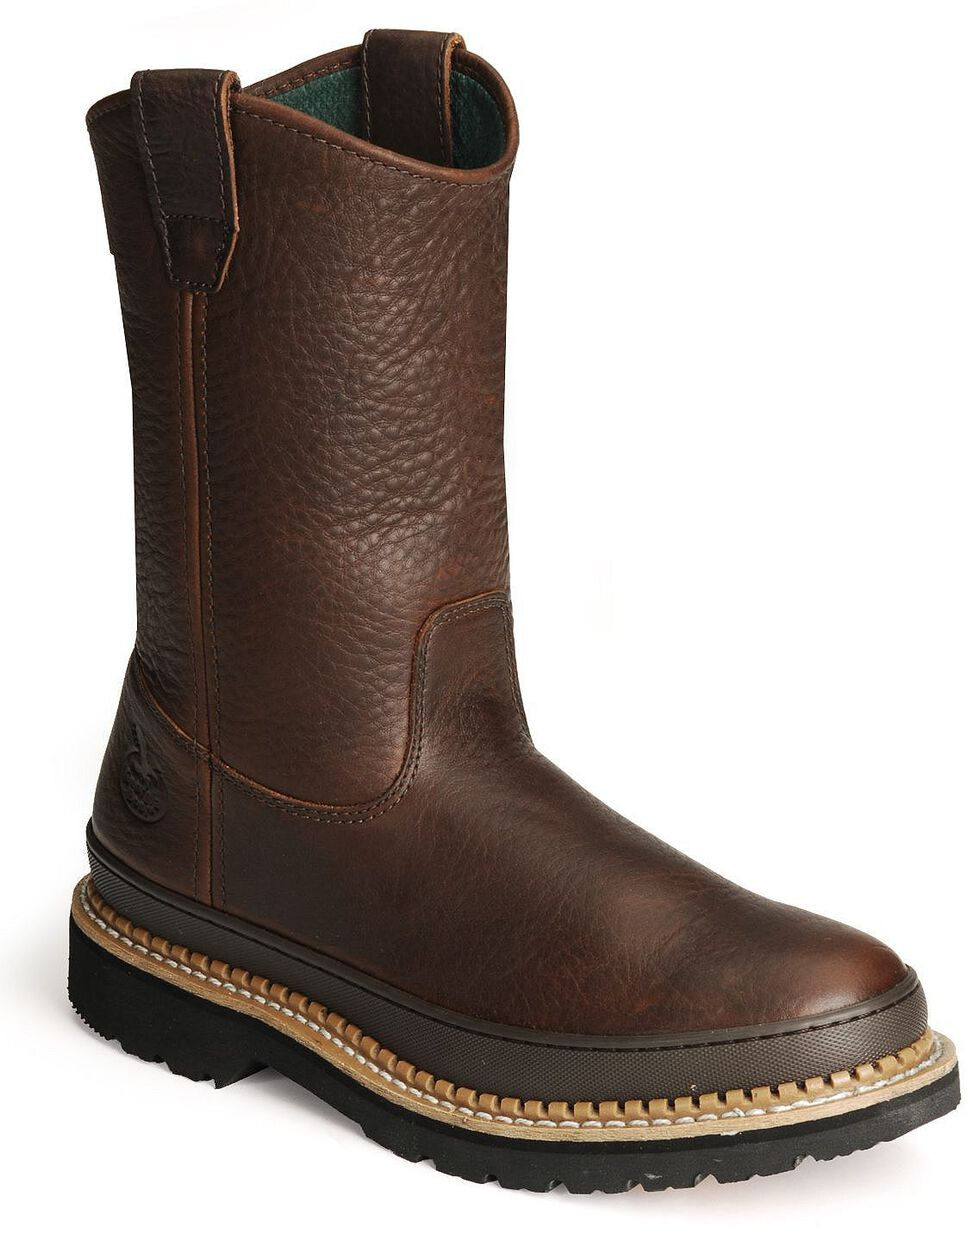 Georgia Giant Wellington Work Boots, Brown, hi-res